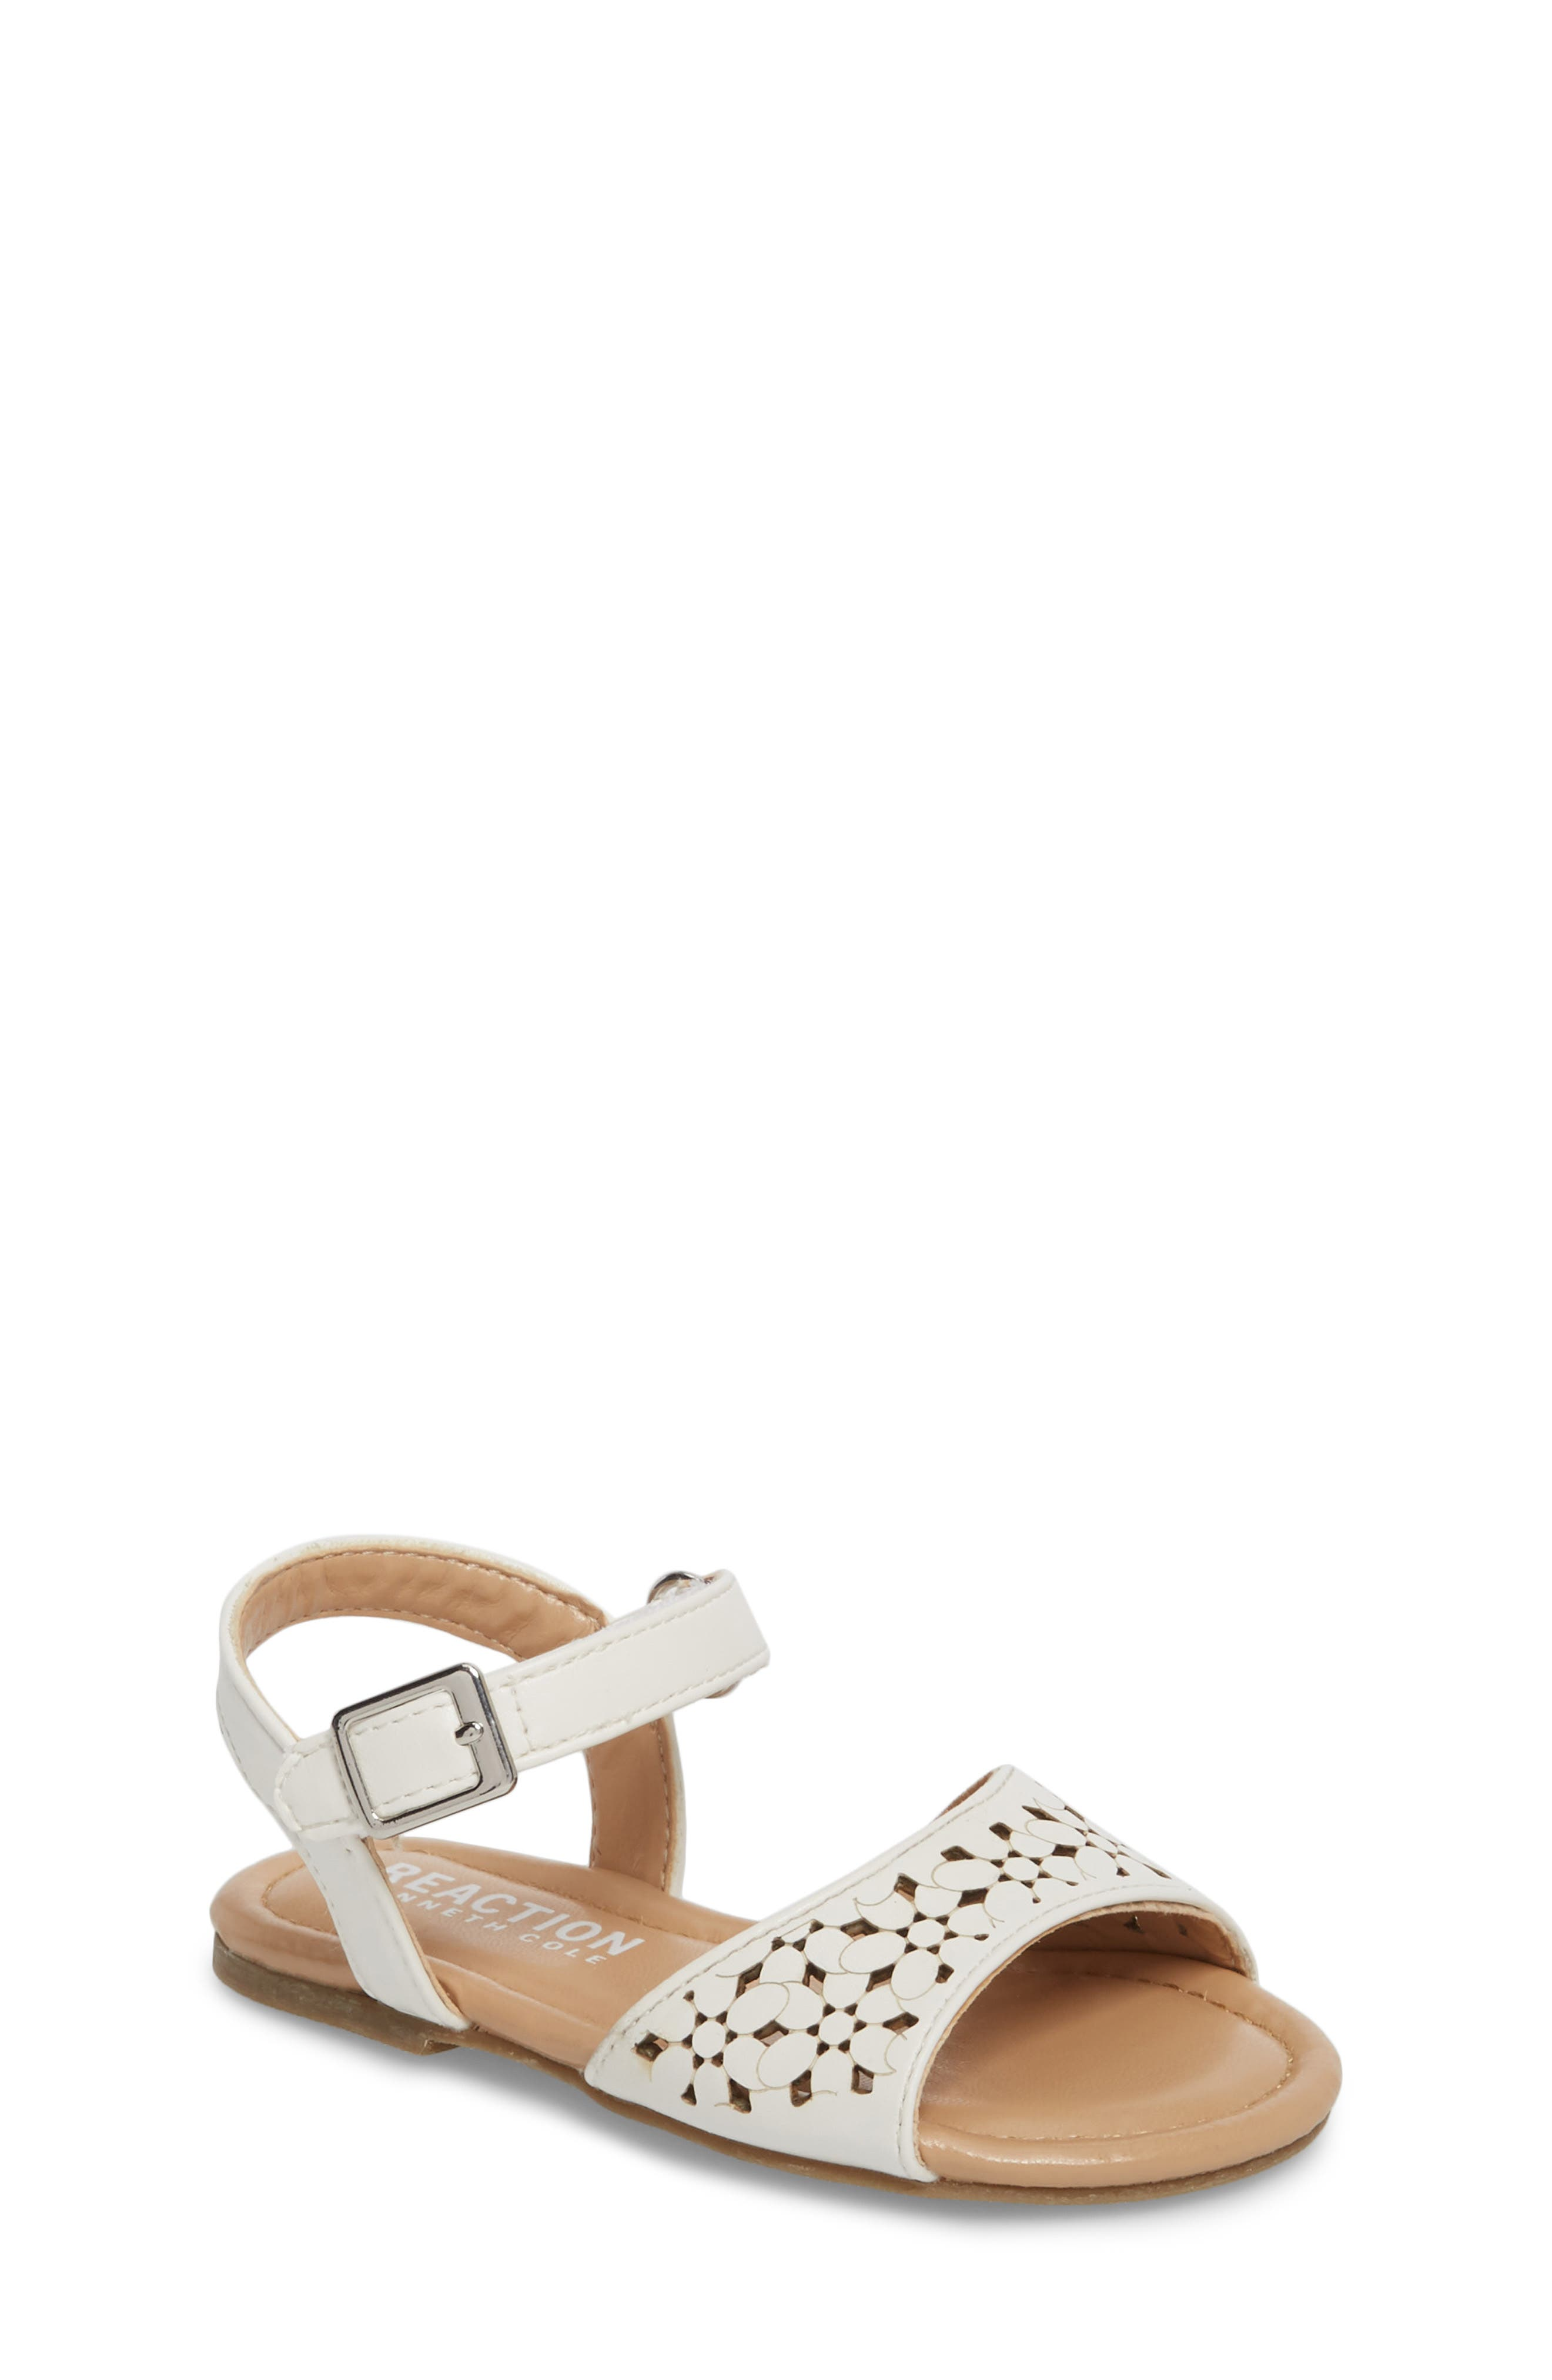 Main Image - Kenneth Cole New York Kiera Perforated Sandal (Walker & Toddler)